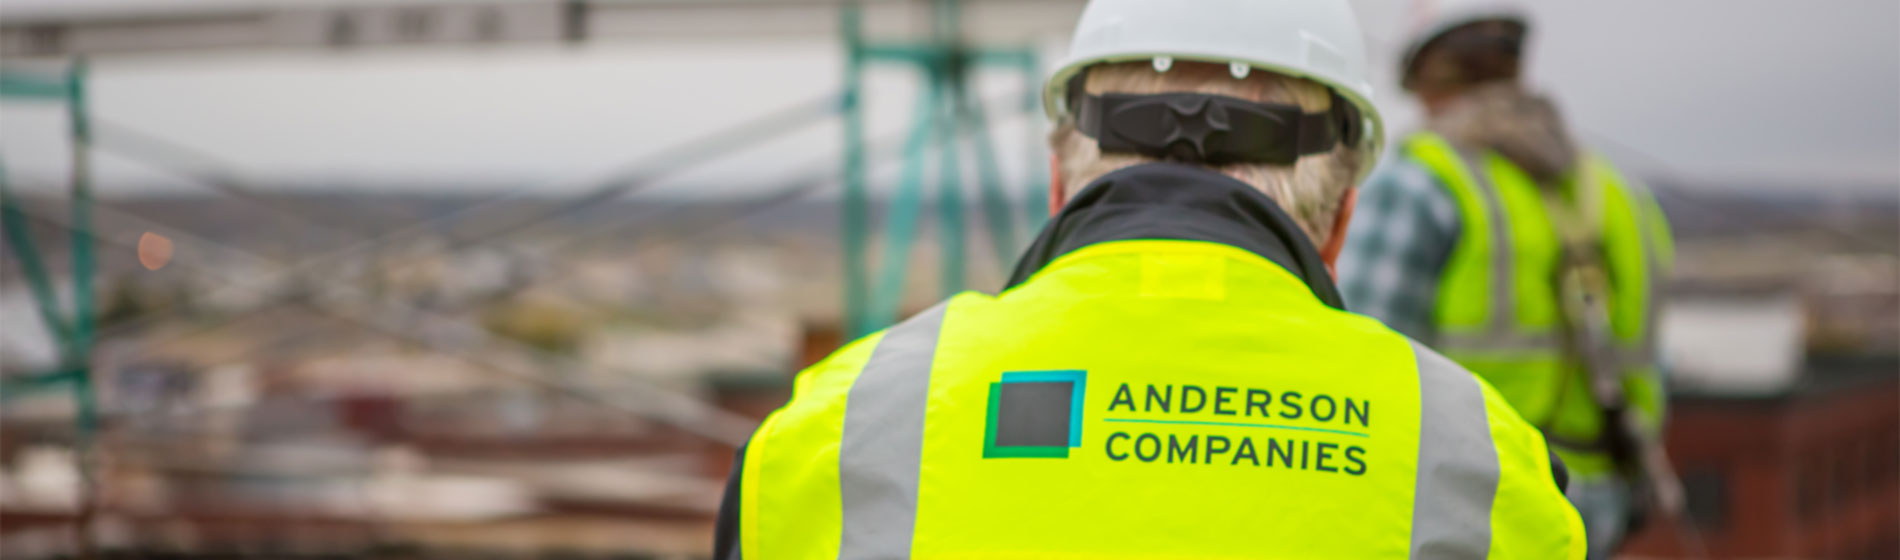 Anderson Companies People